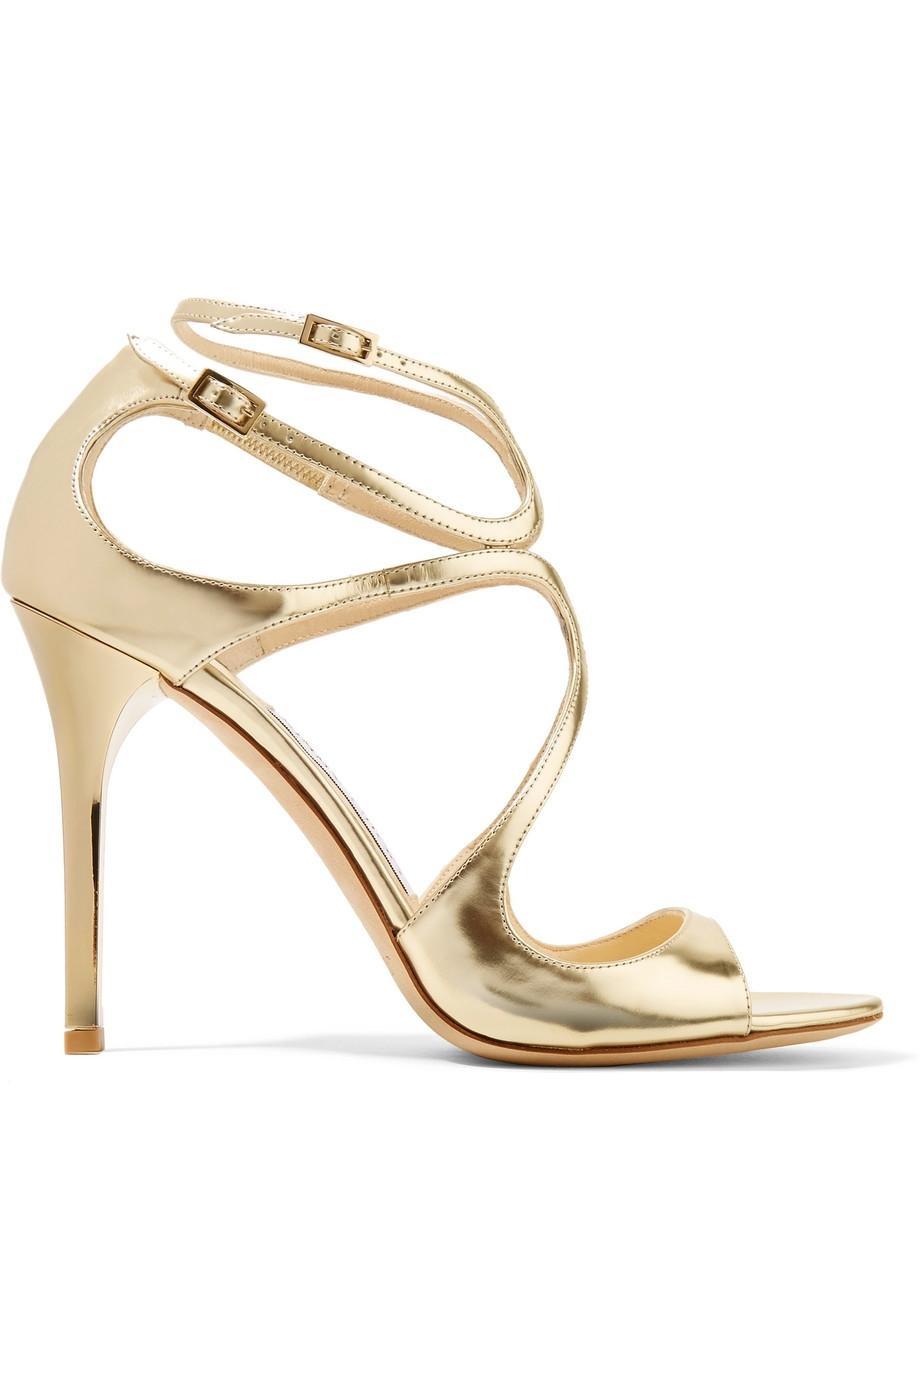 Jimmy Choo Gold - Lang 100mm Pumps Sandals Size EU 34.5 (Approx. US 4.5) Regular (M, B)